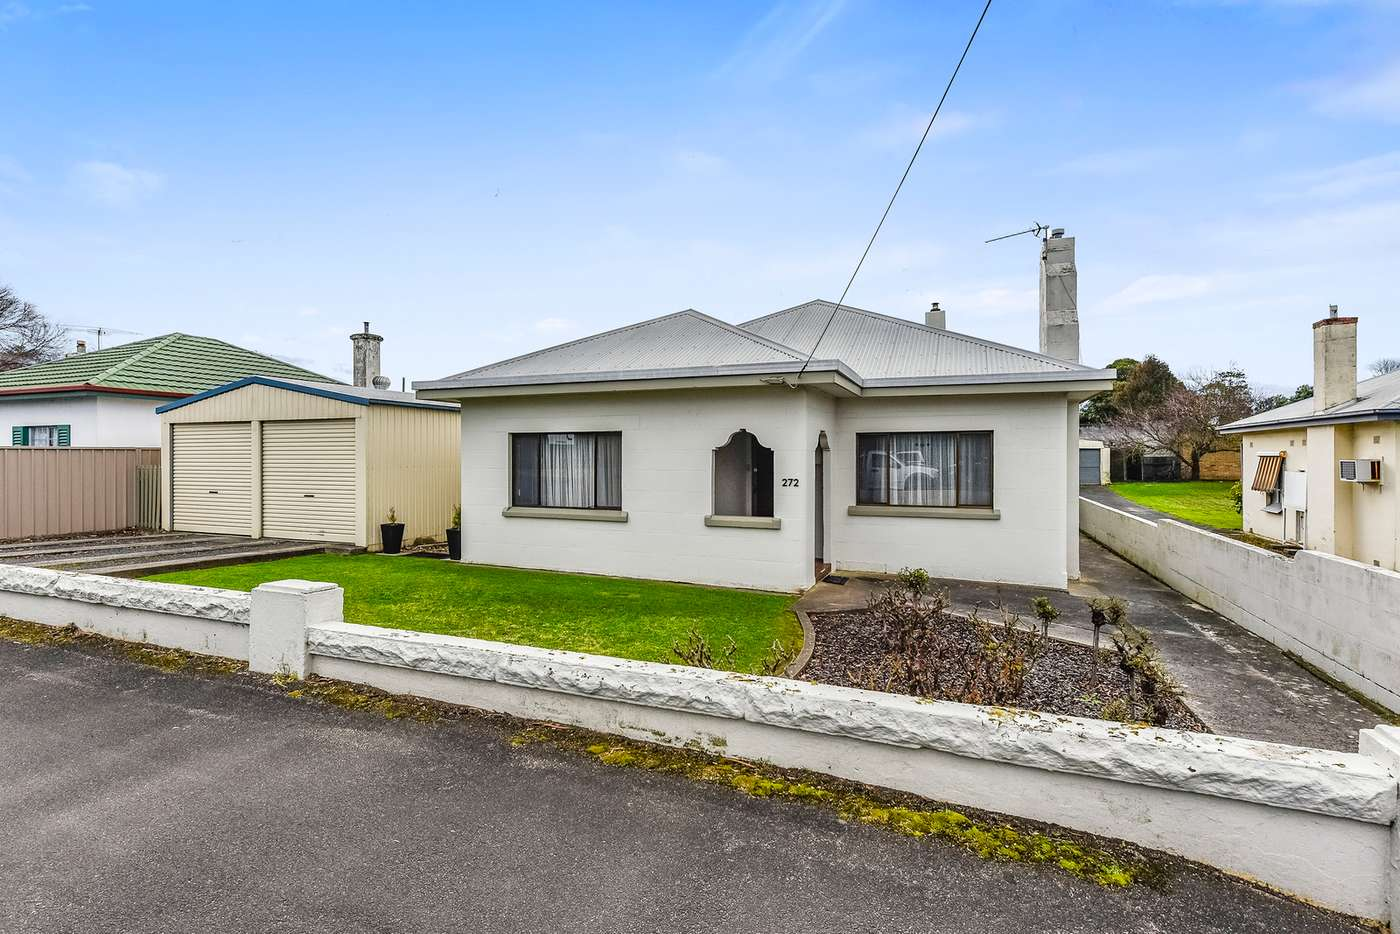 Main view of Homely house listing, 272 Commercial Street West, Mount Gambier SA 5290